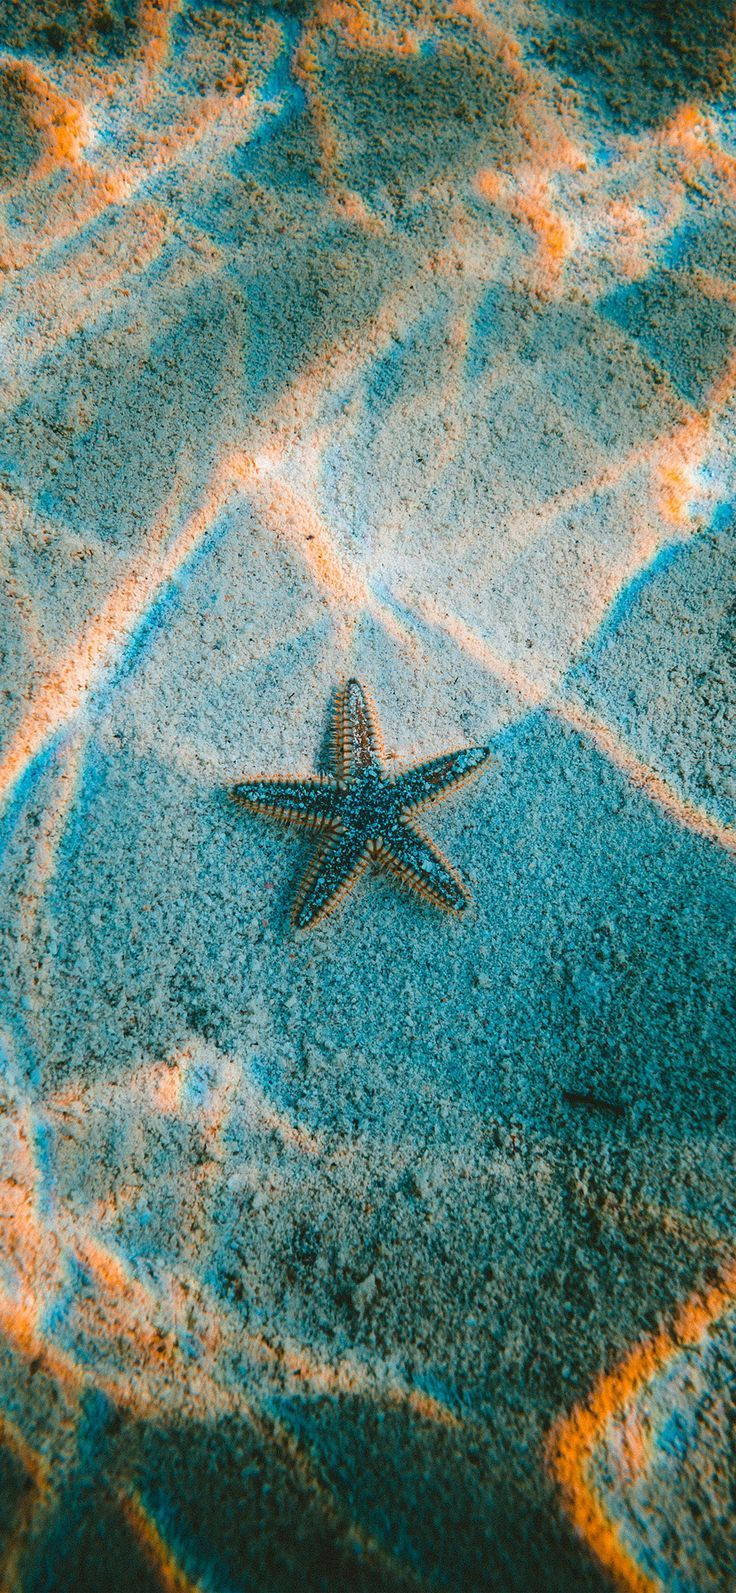 nu23-starfish-sea-beach-nature via iPhoneXpapers.com – Wallpapers für iPhone X – #für #iPhone #iPhoneXpaperscom